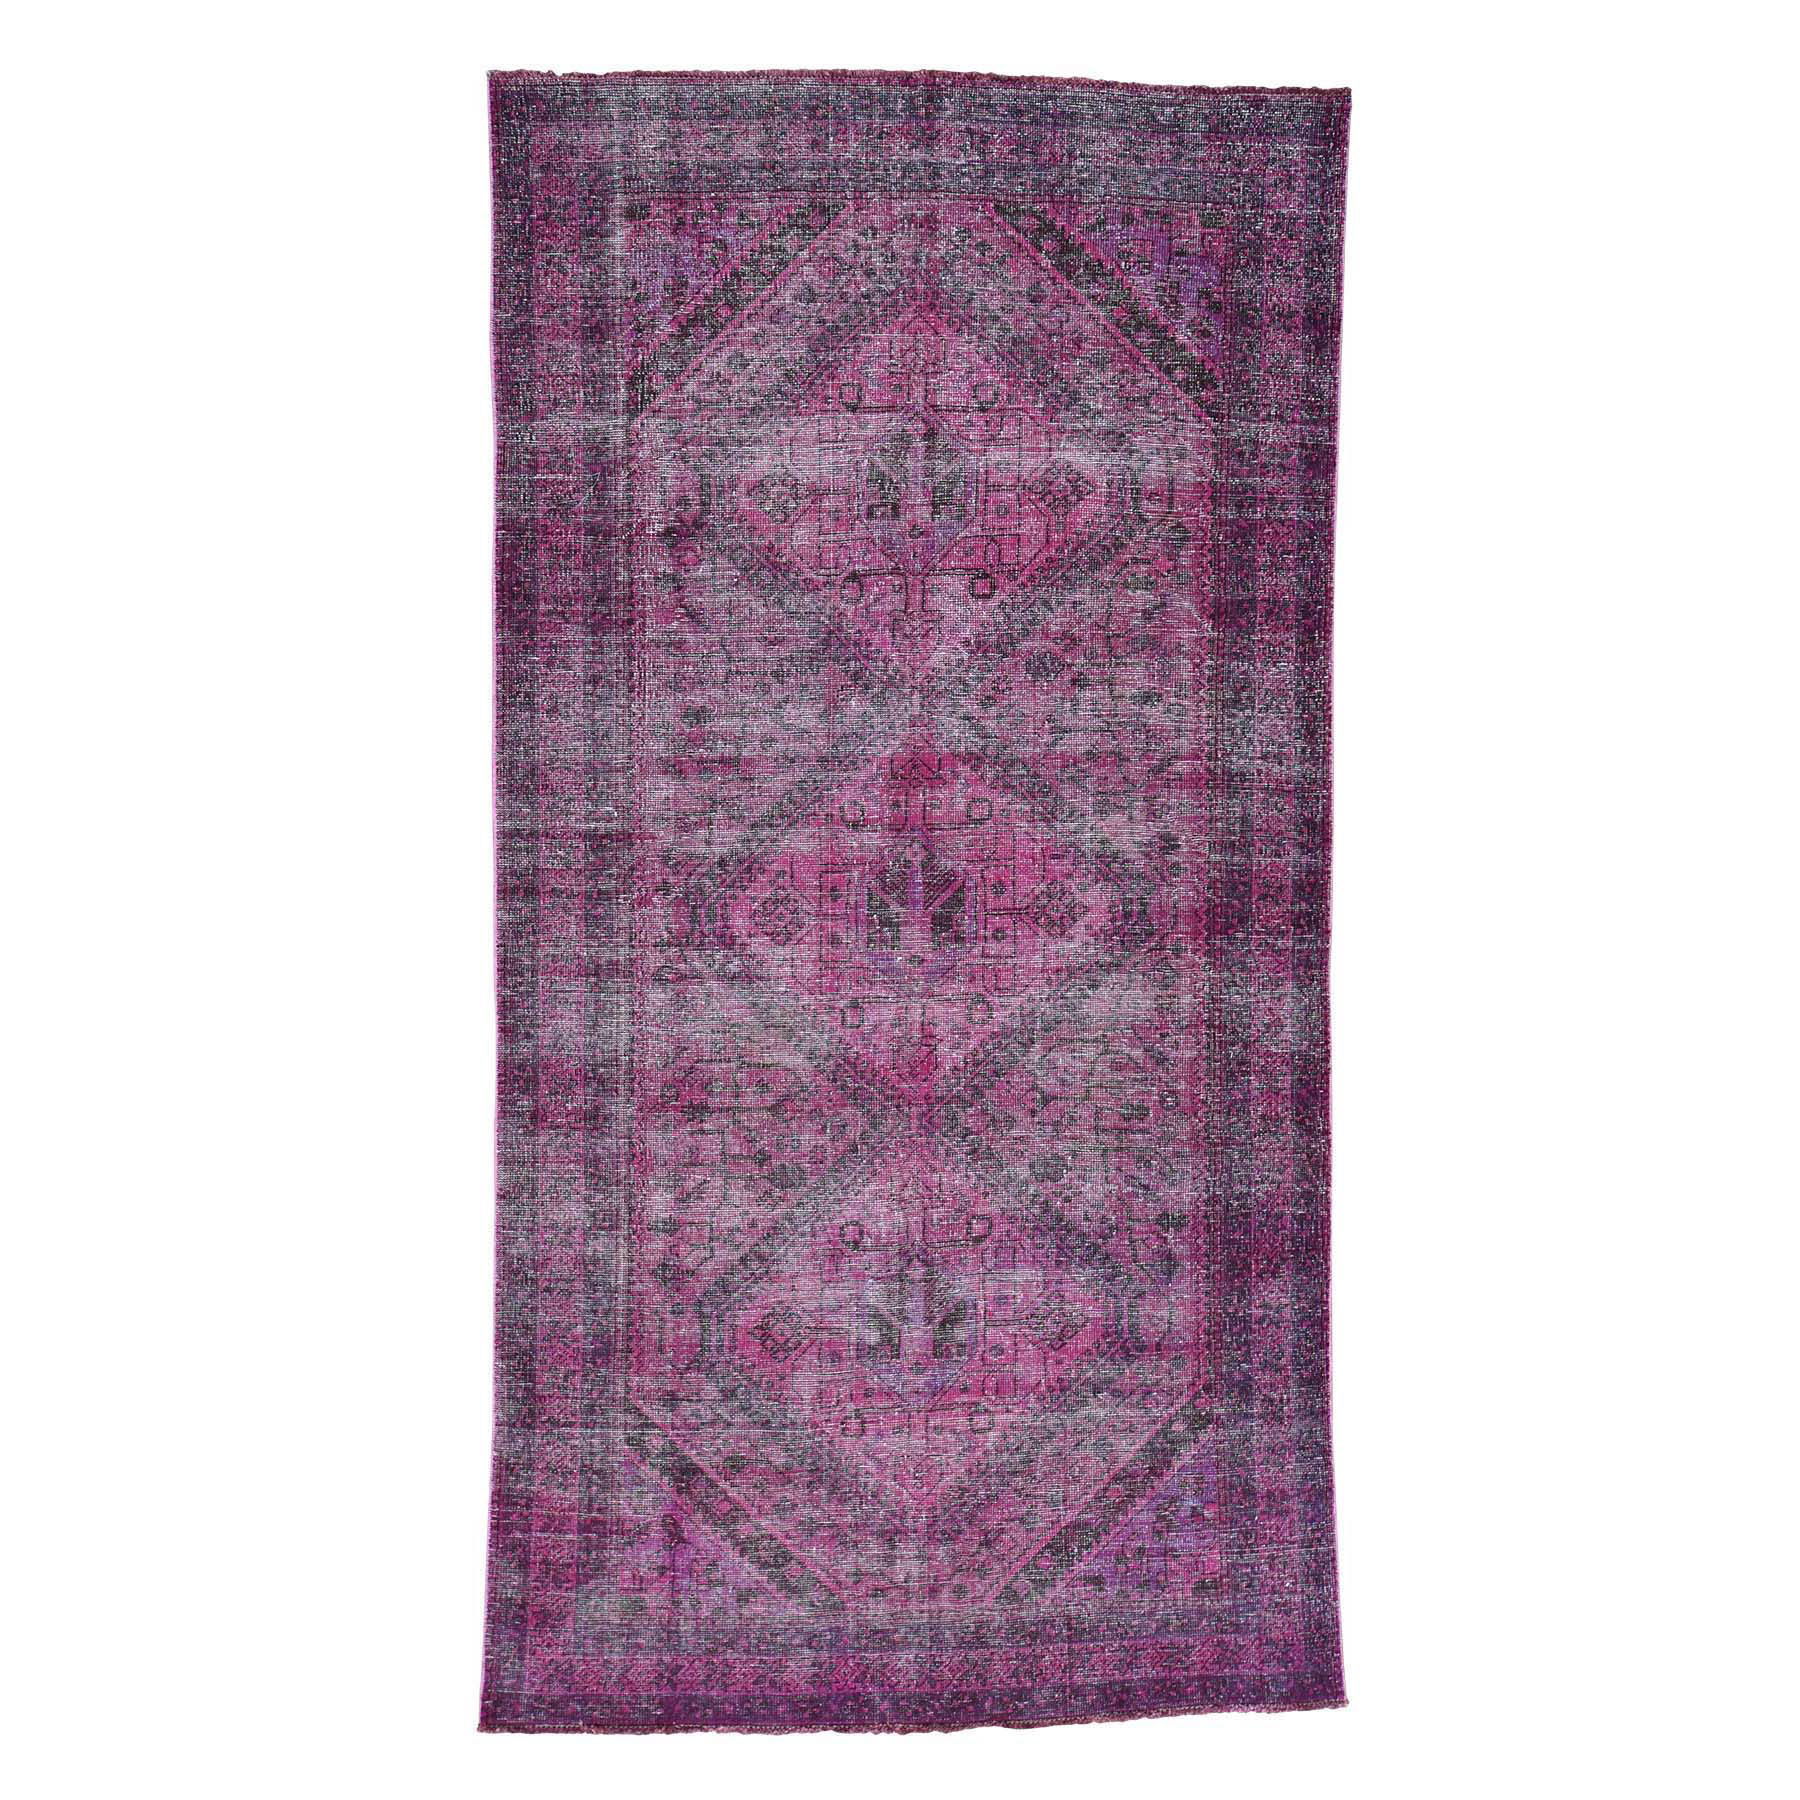 Fetneh Collection And Vintage Overdyed Collection Hand Knotted Pink Rug No: 0169636